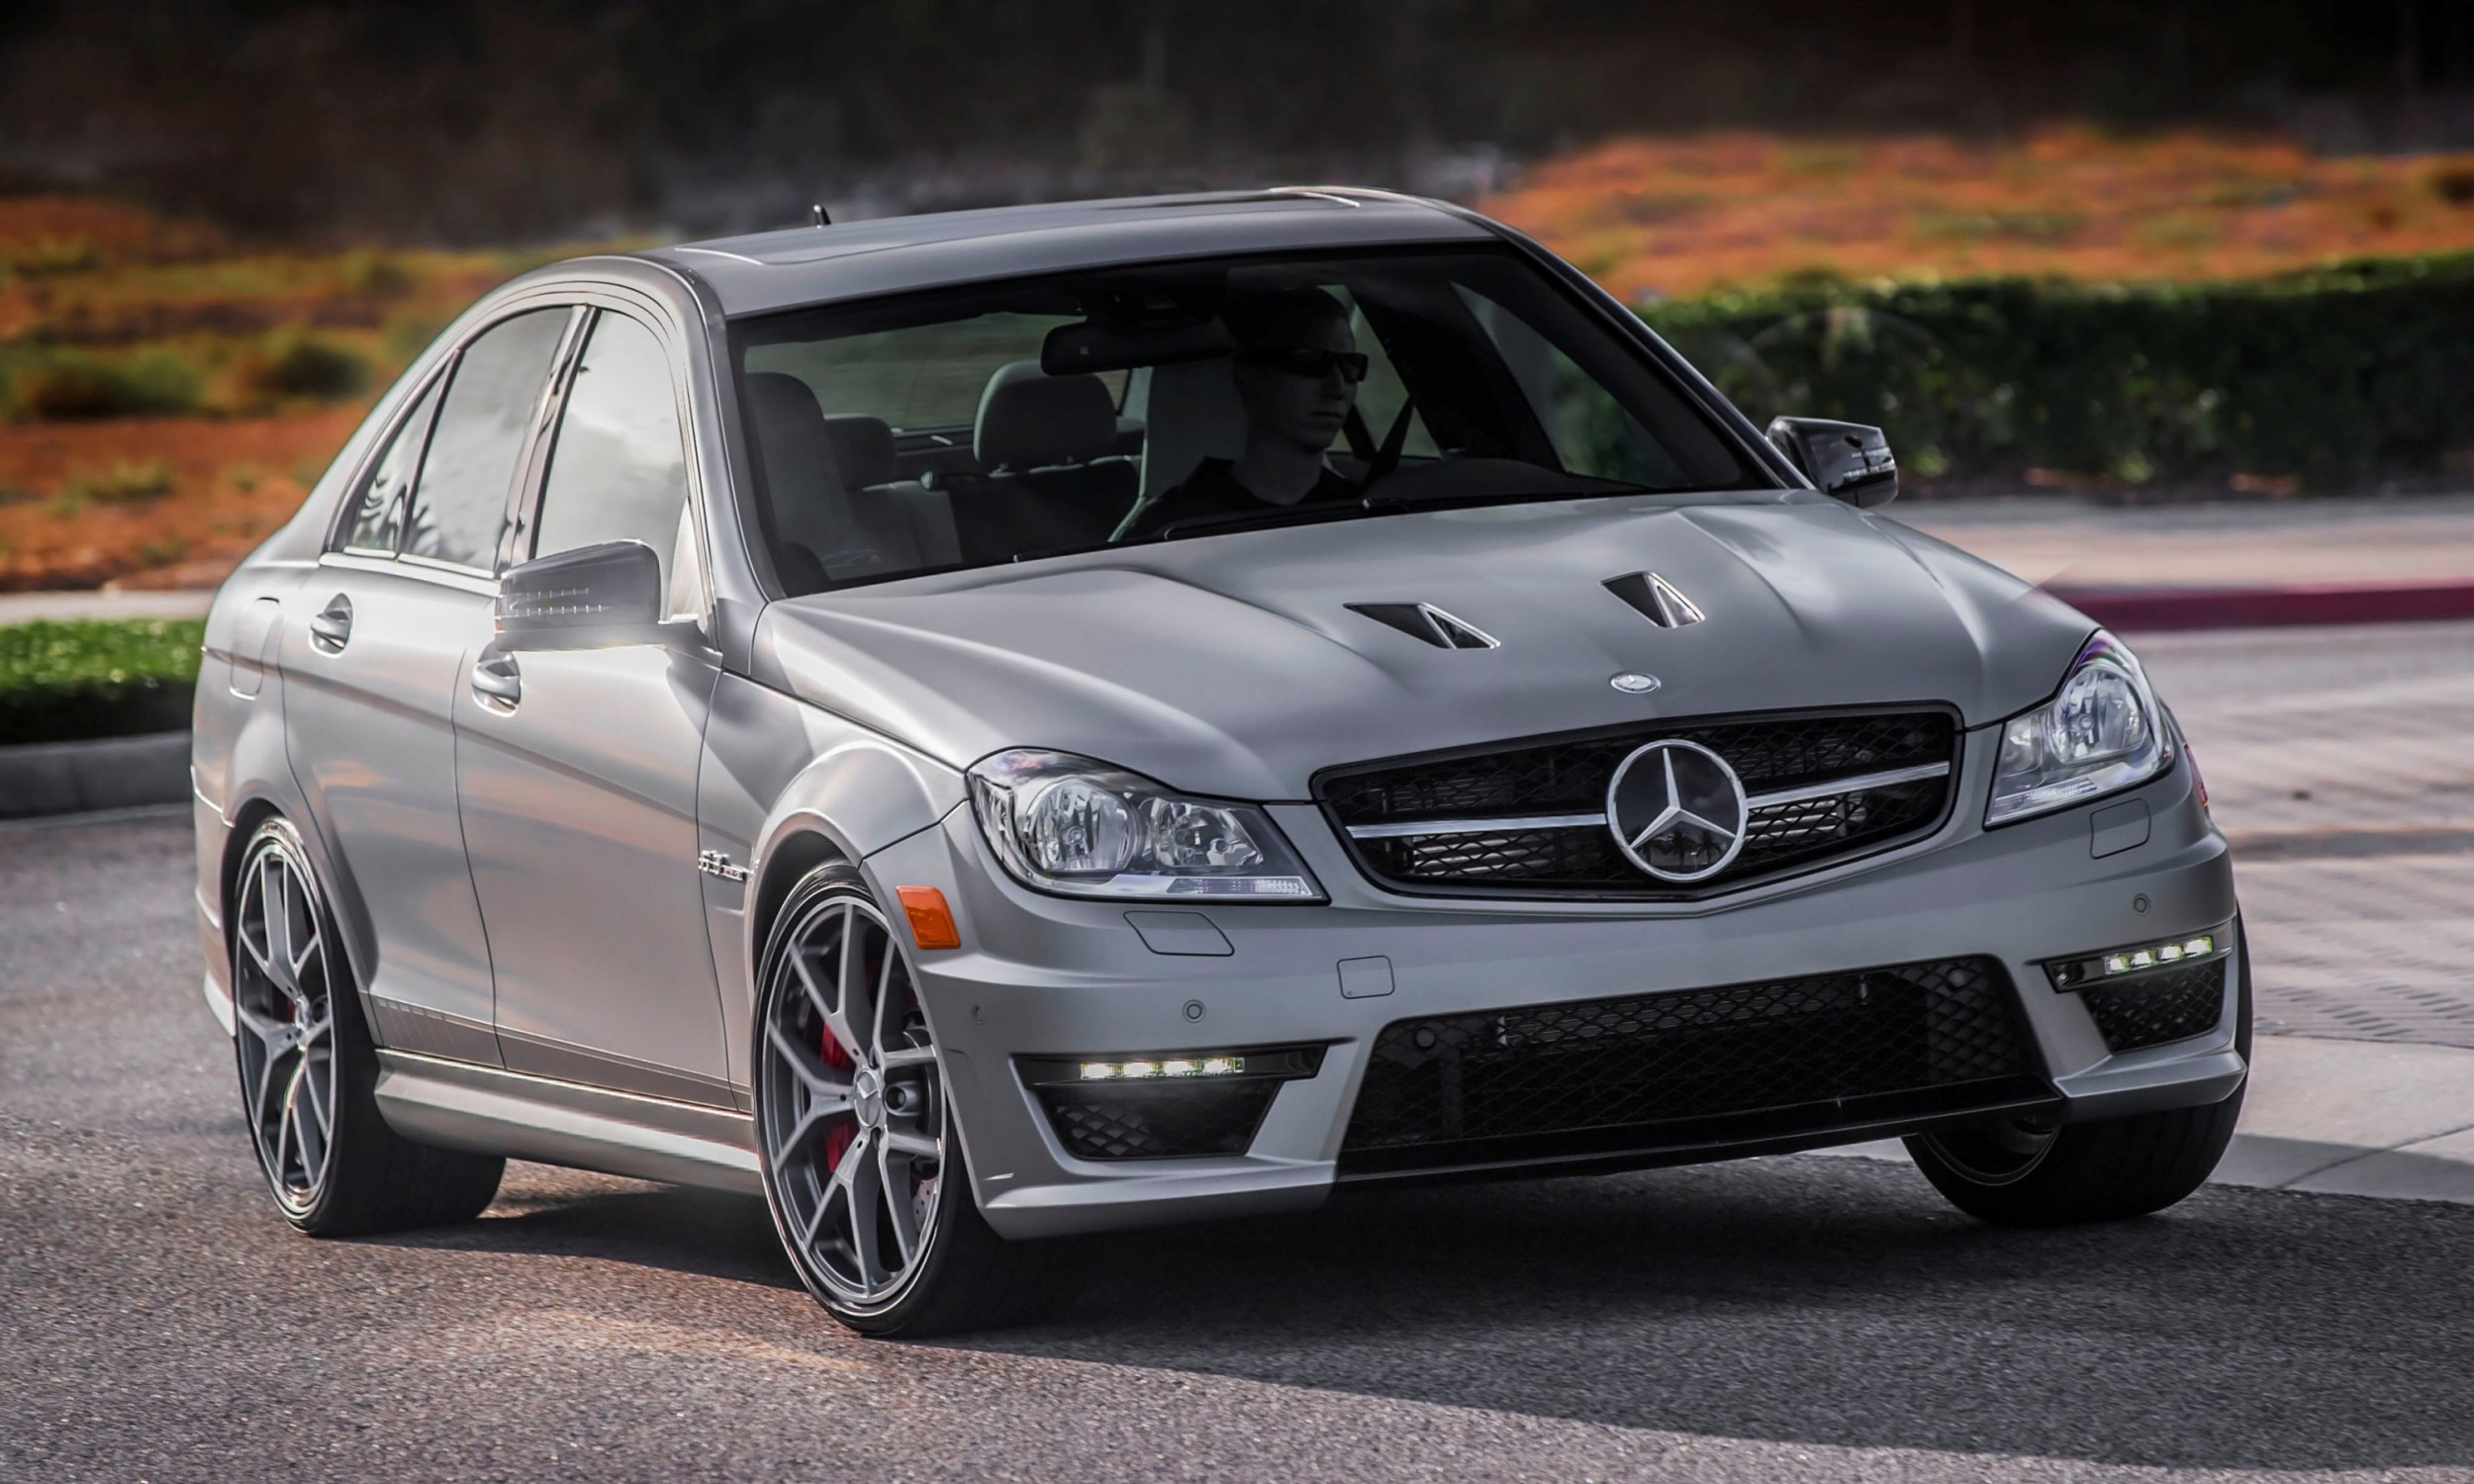 2014 c63 amg edition 507 sedan and coupe going out with v8 for 2014 mercedes benz c63 amg edition 507 for sale